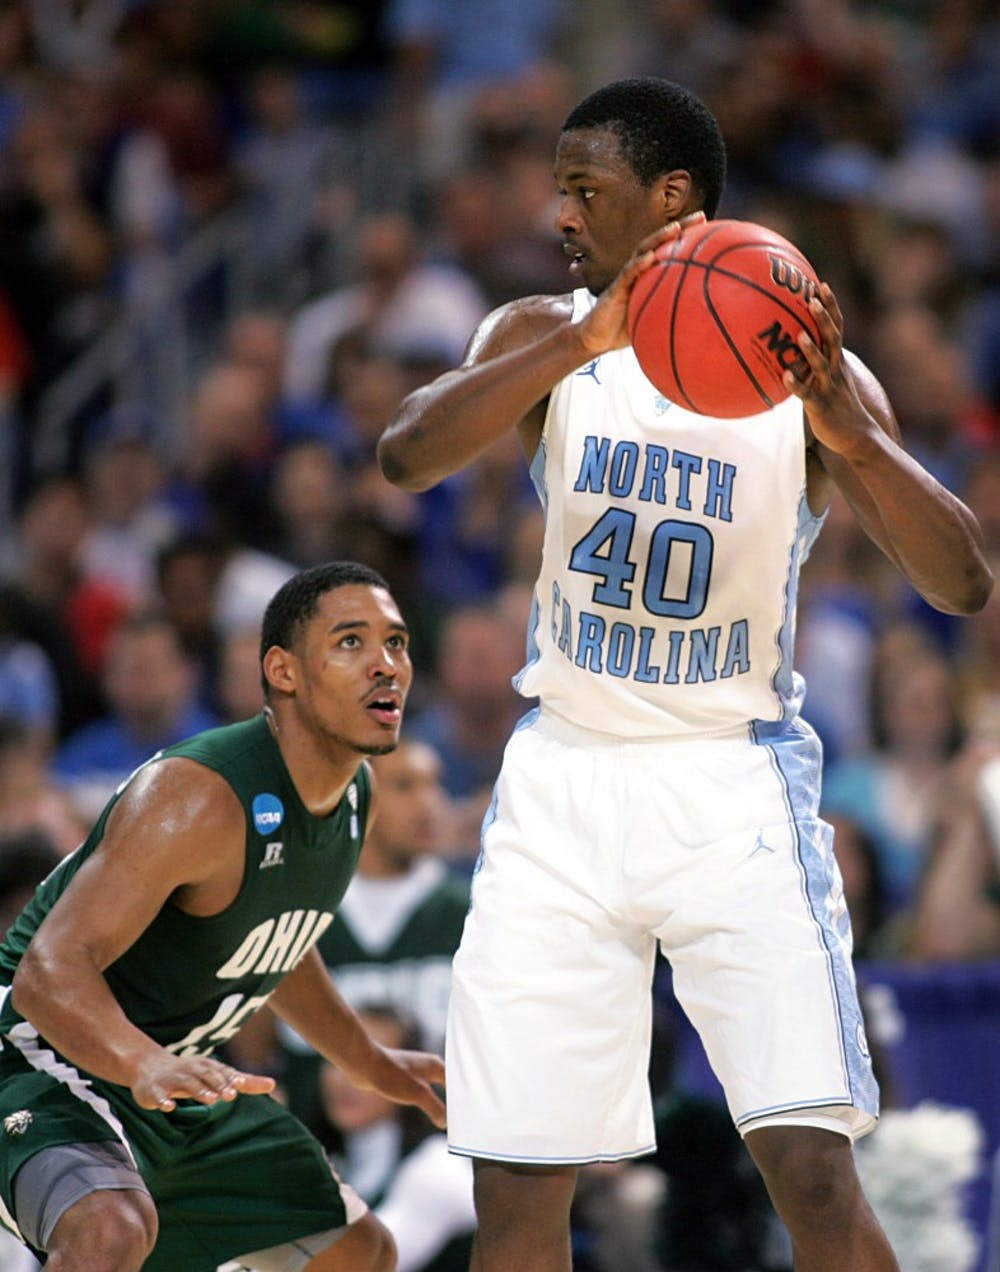 <p>UNC forward Harrison Barnes is defended by Ohio guard Nick Kellogg. Barnes scored 12 points in the Tar Heels 73-65 overtime win over Ohio on Friday, March 23, 2012 in the Sweet 16 round of the NCAA Tournament at the Edward Jones Dome in St. Louis.&nbsp;</p>